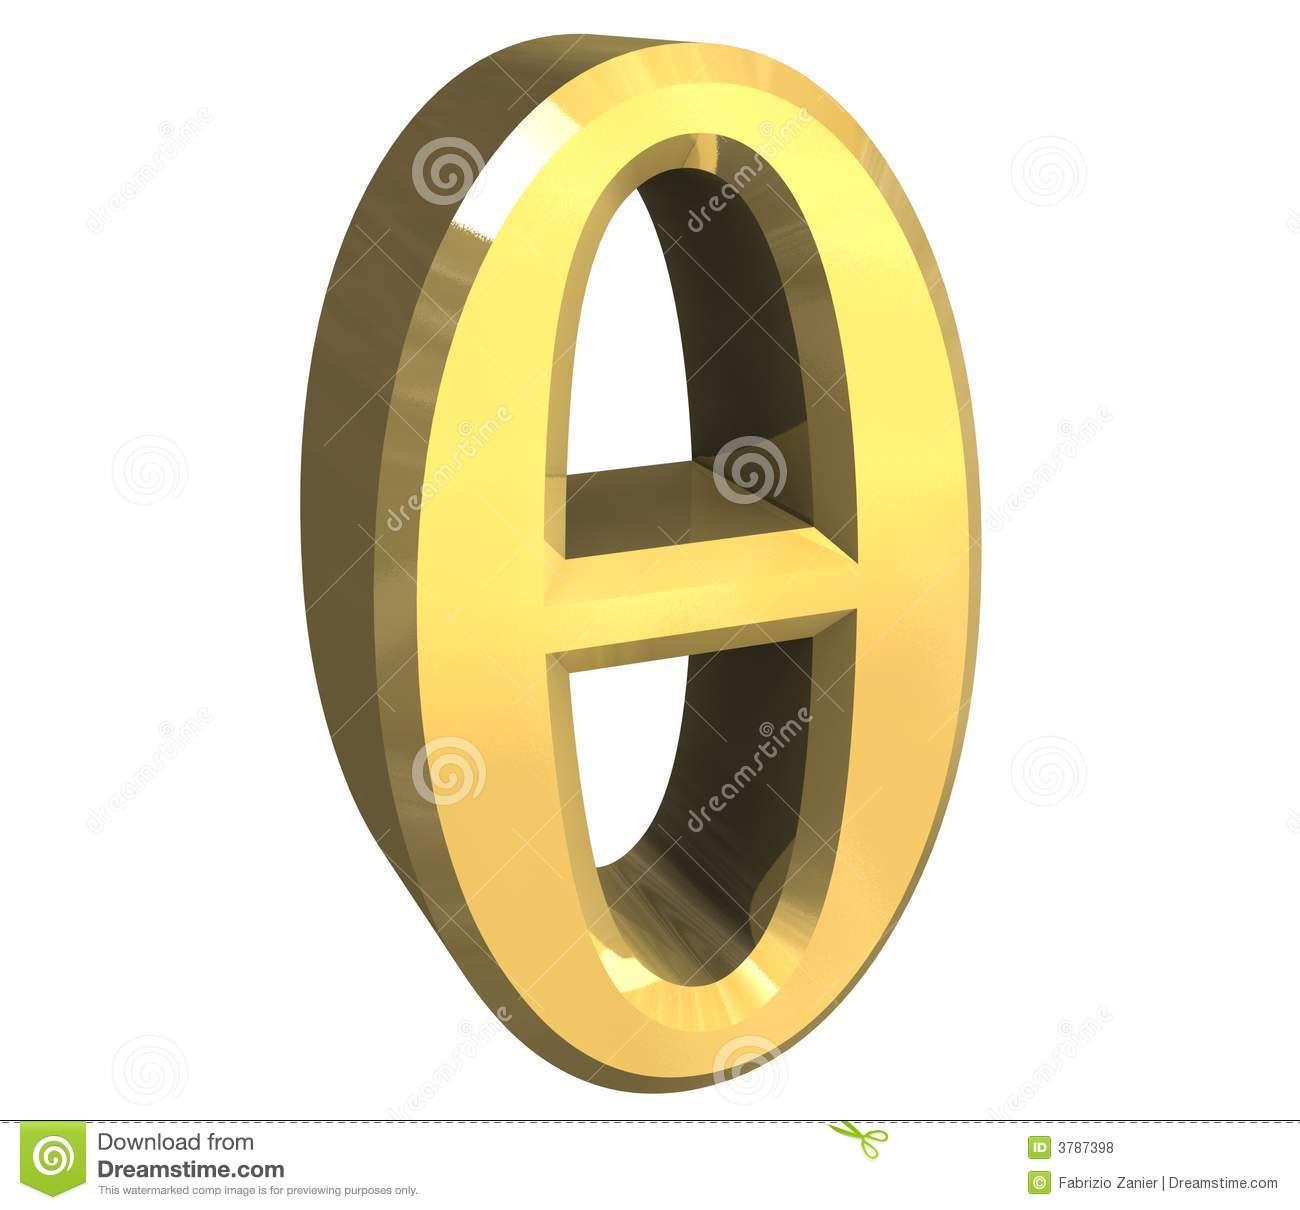 3d theta symbol in gold stock illustration illustration of sign 3d theta symbol in gold biocorpaavc Image collections